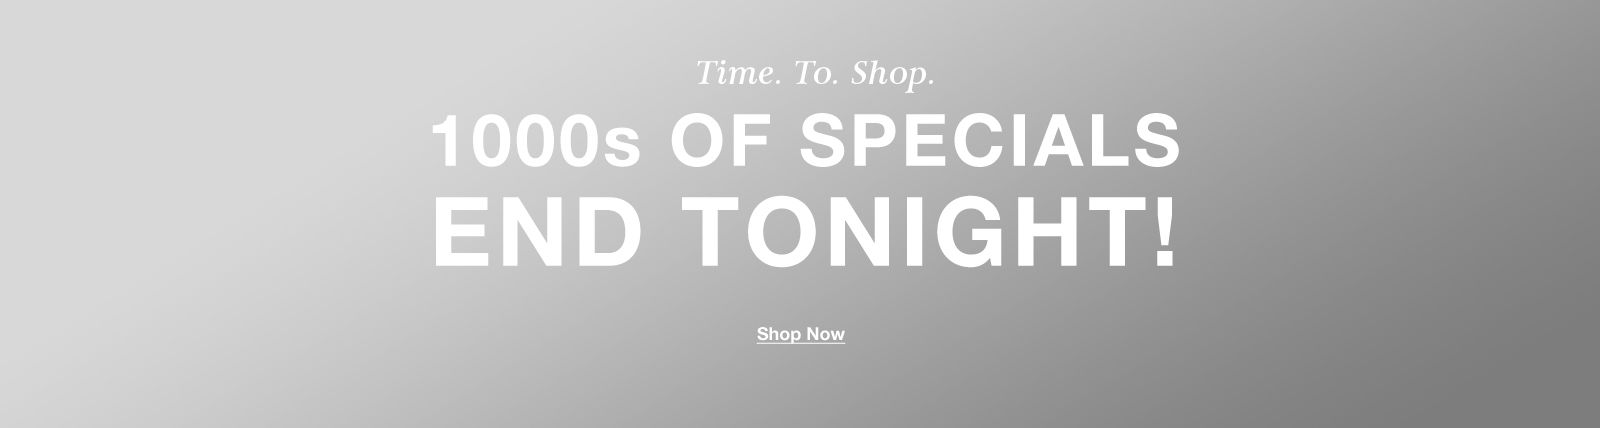 Time to Shop, 1000s of Specials End Tonight! Shop Now